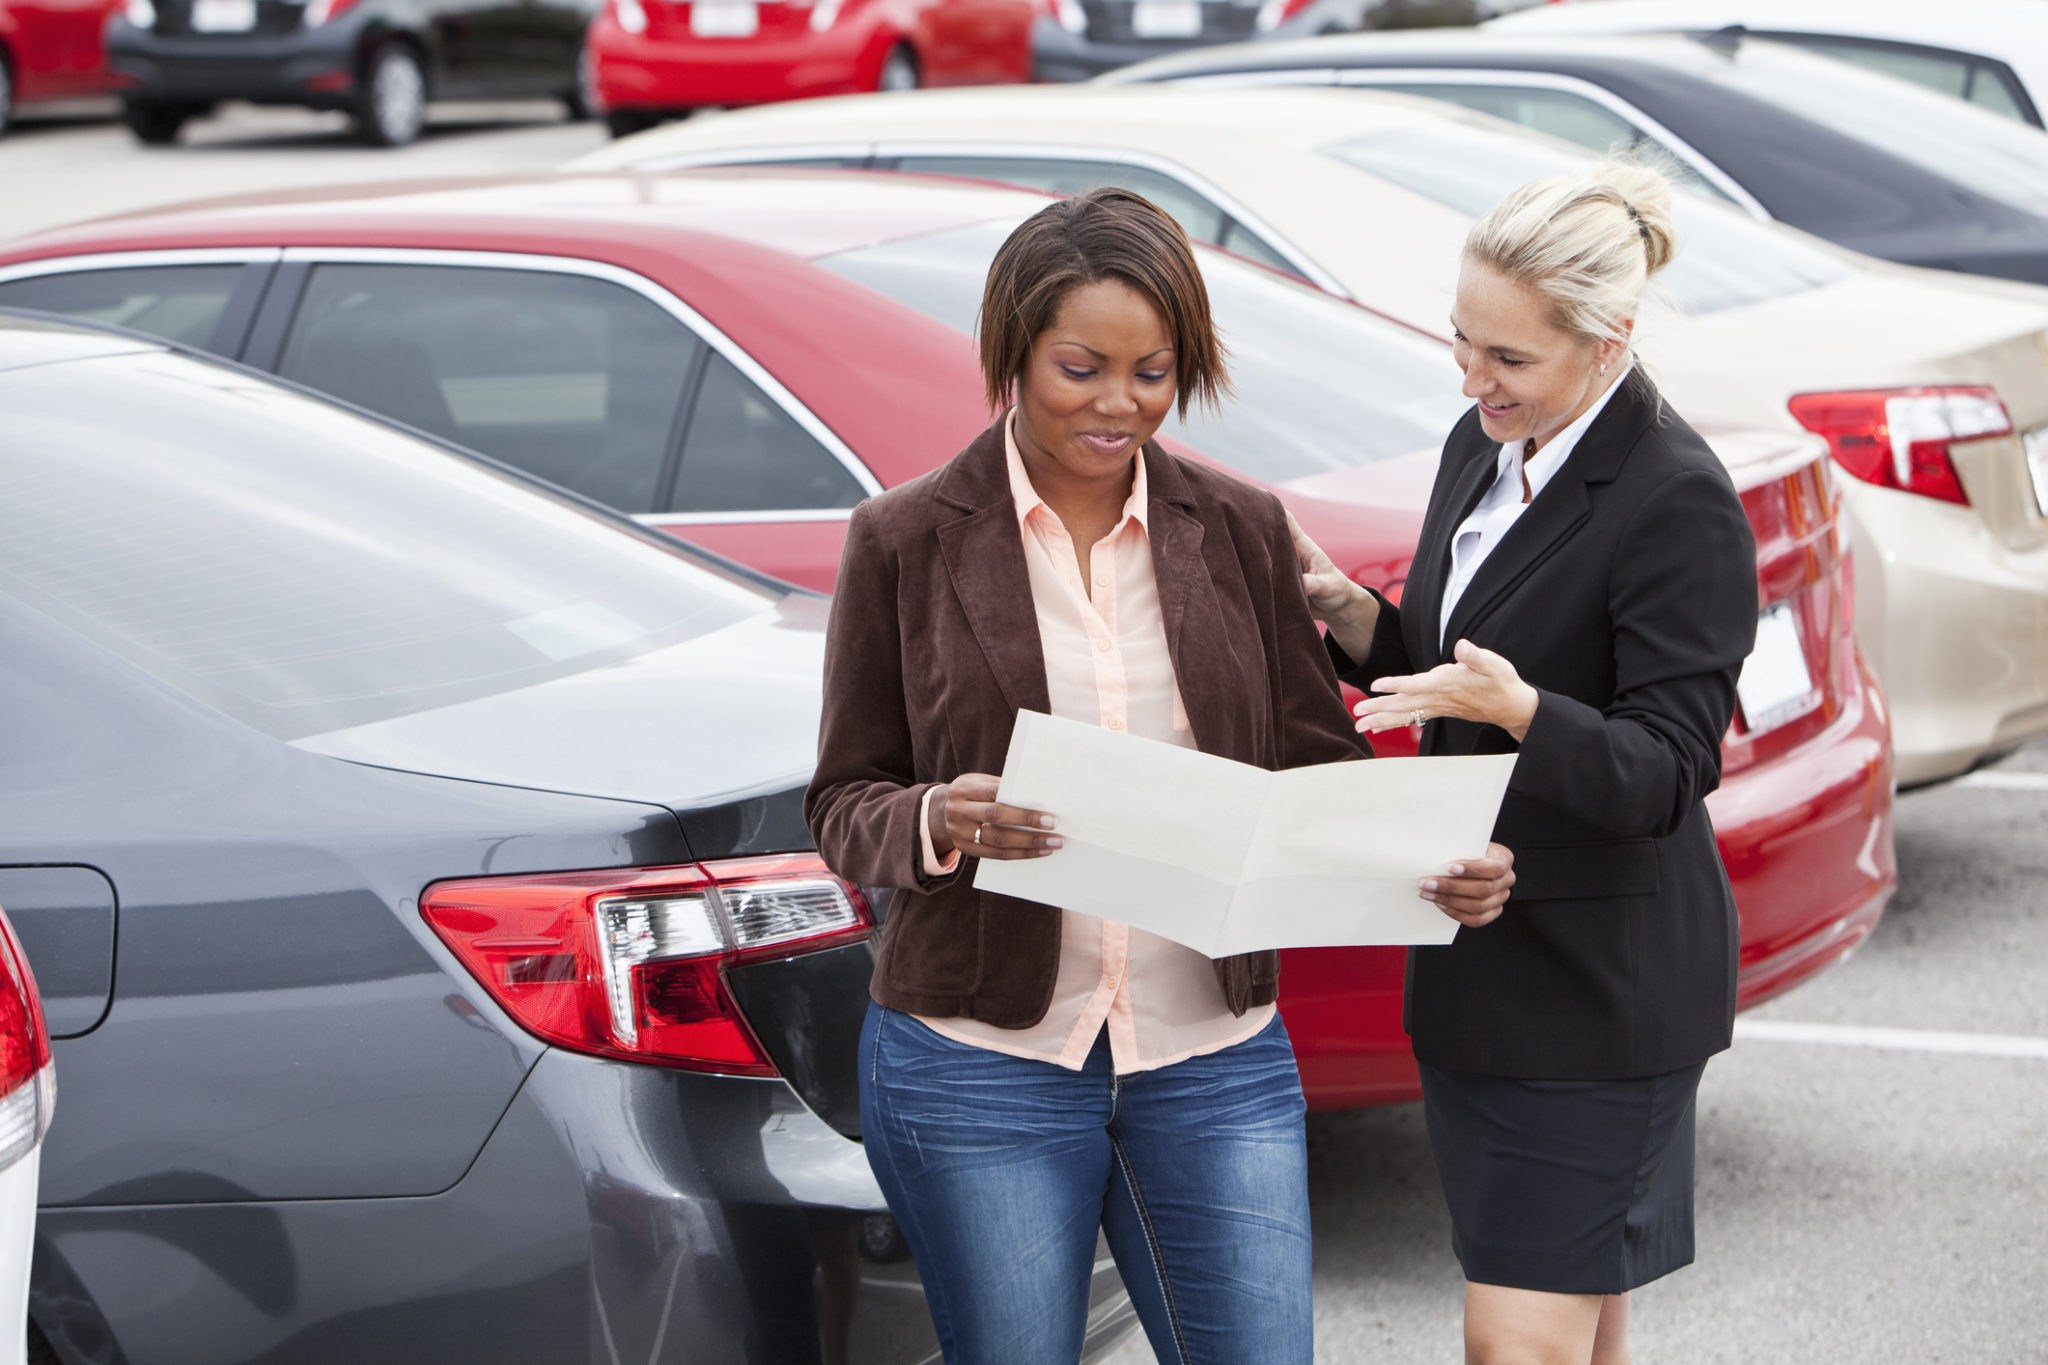 Don't Lie About Your Address For Lower Auto Insurance Rates